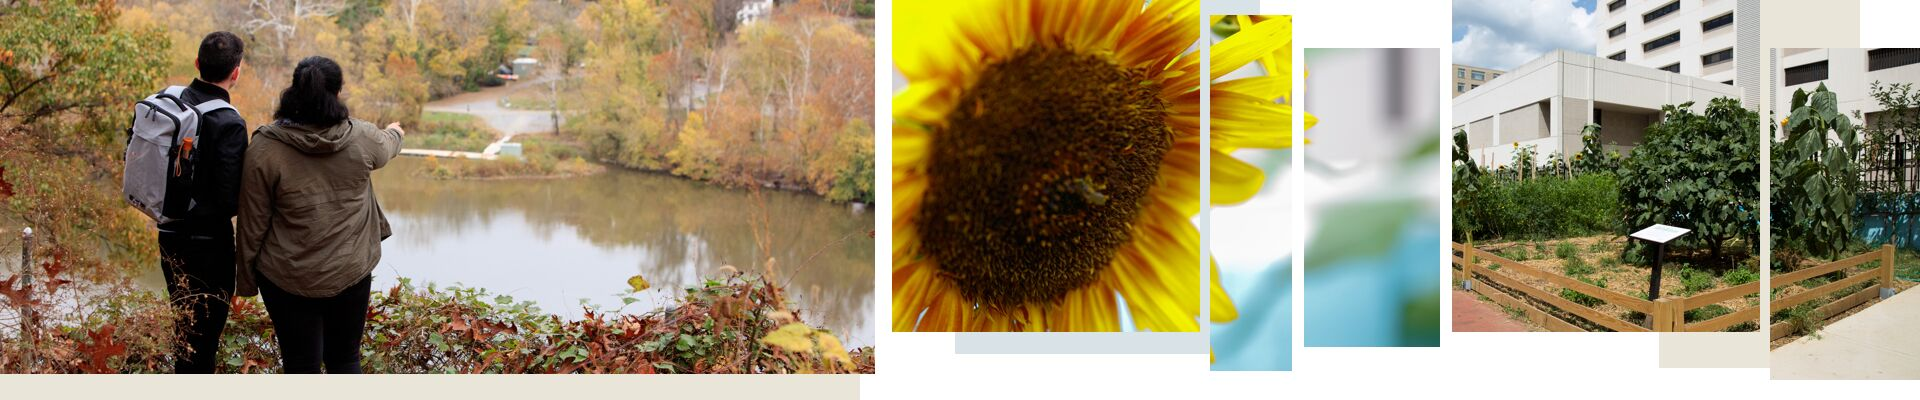 Students looking over river, a sunflower, a garden